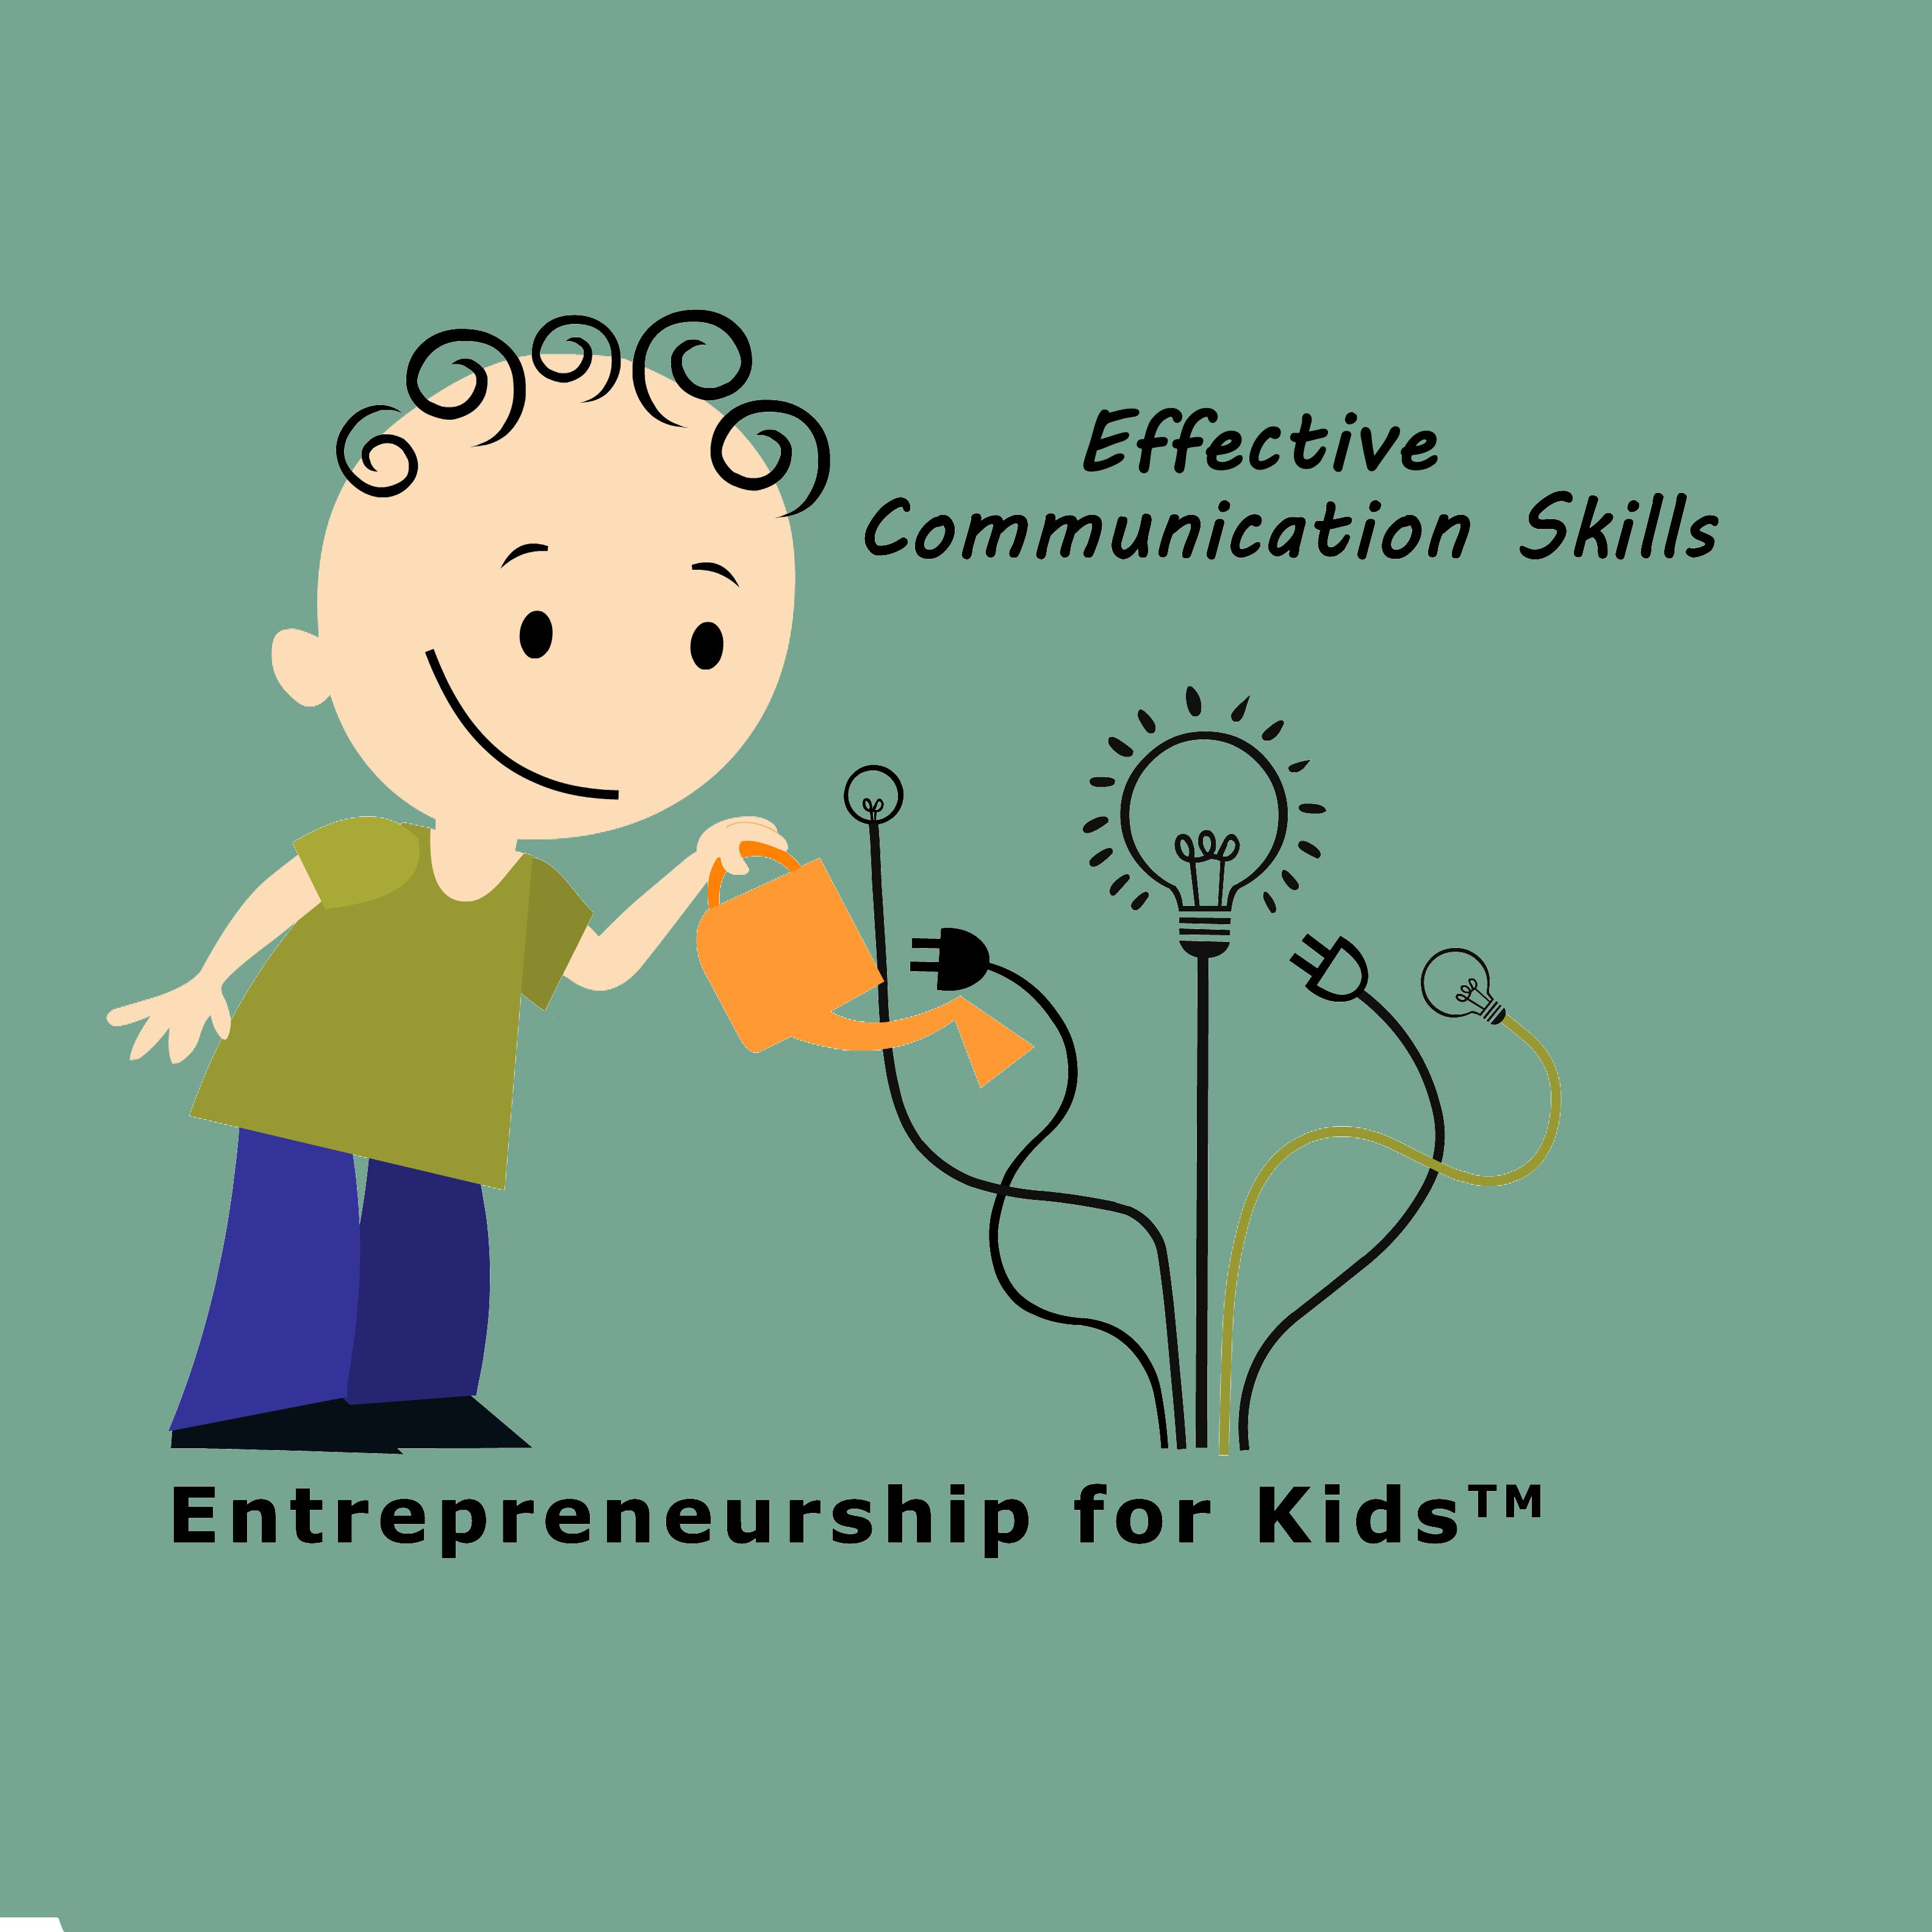 Effective Communication Skills The Children Will Learn